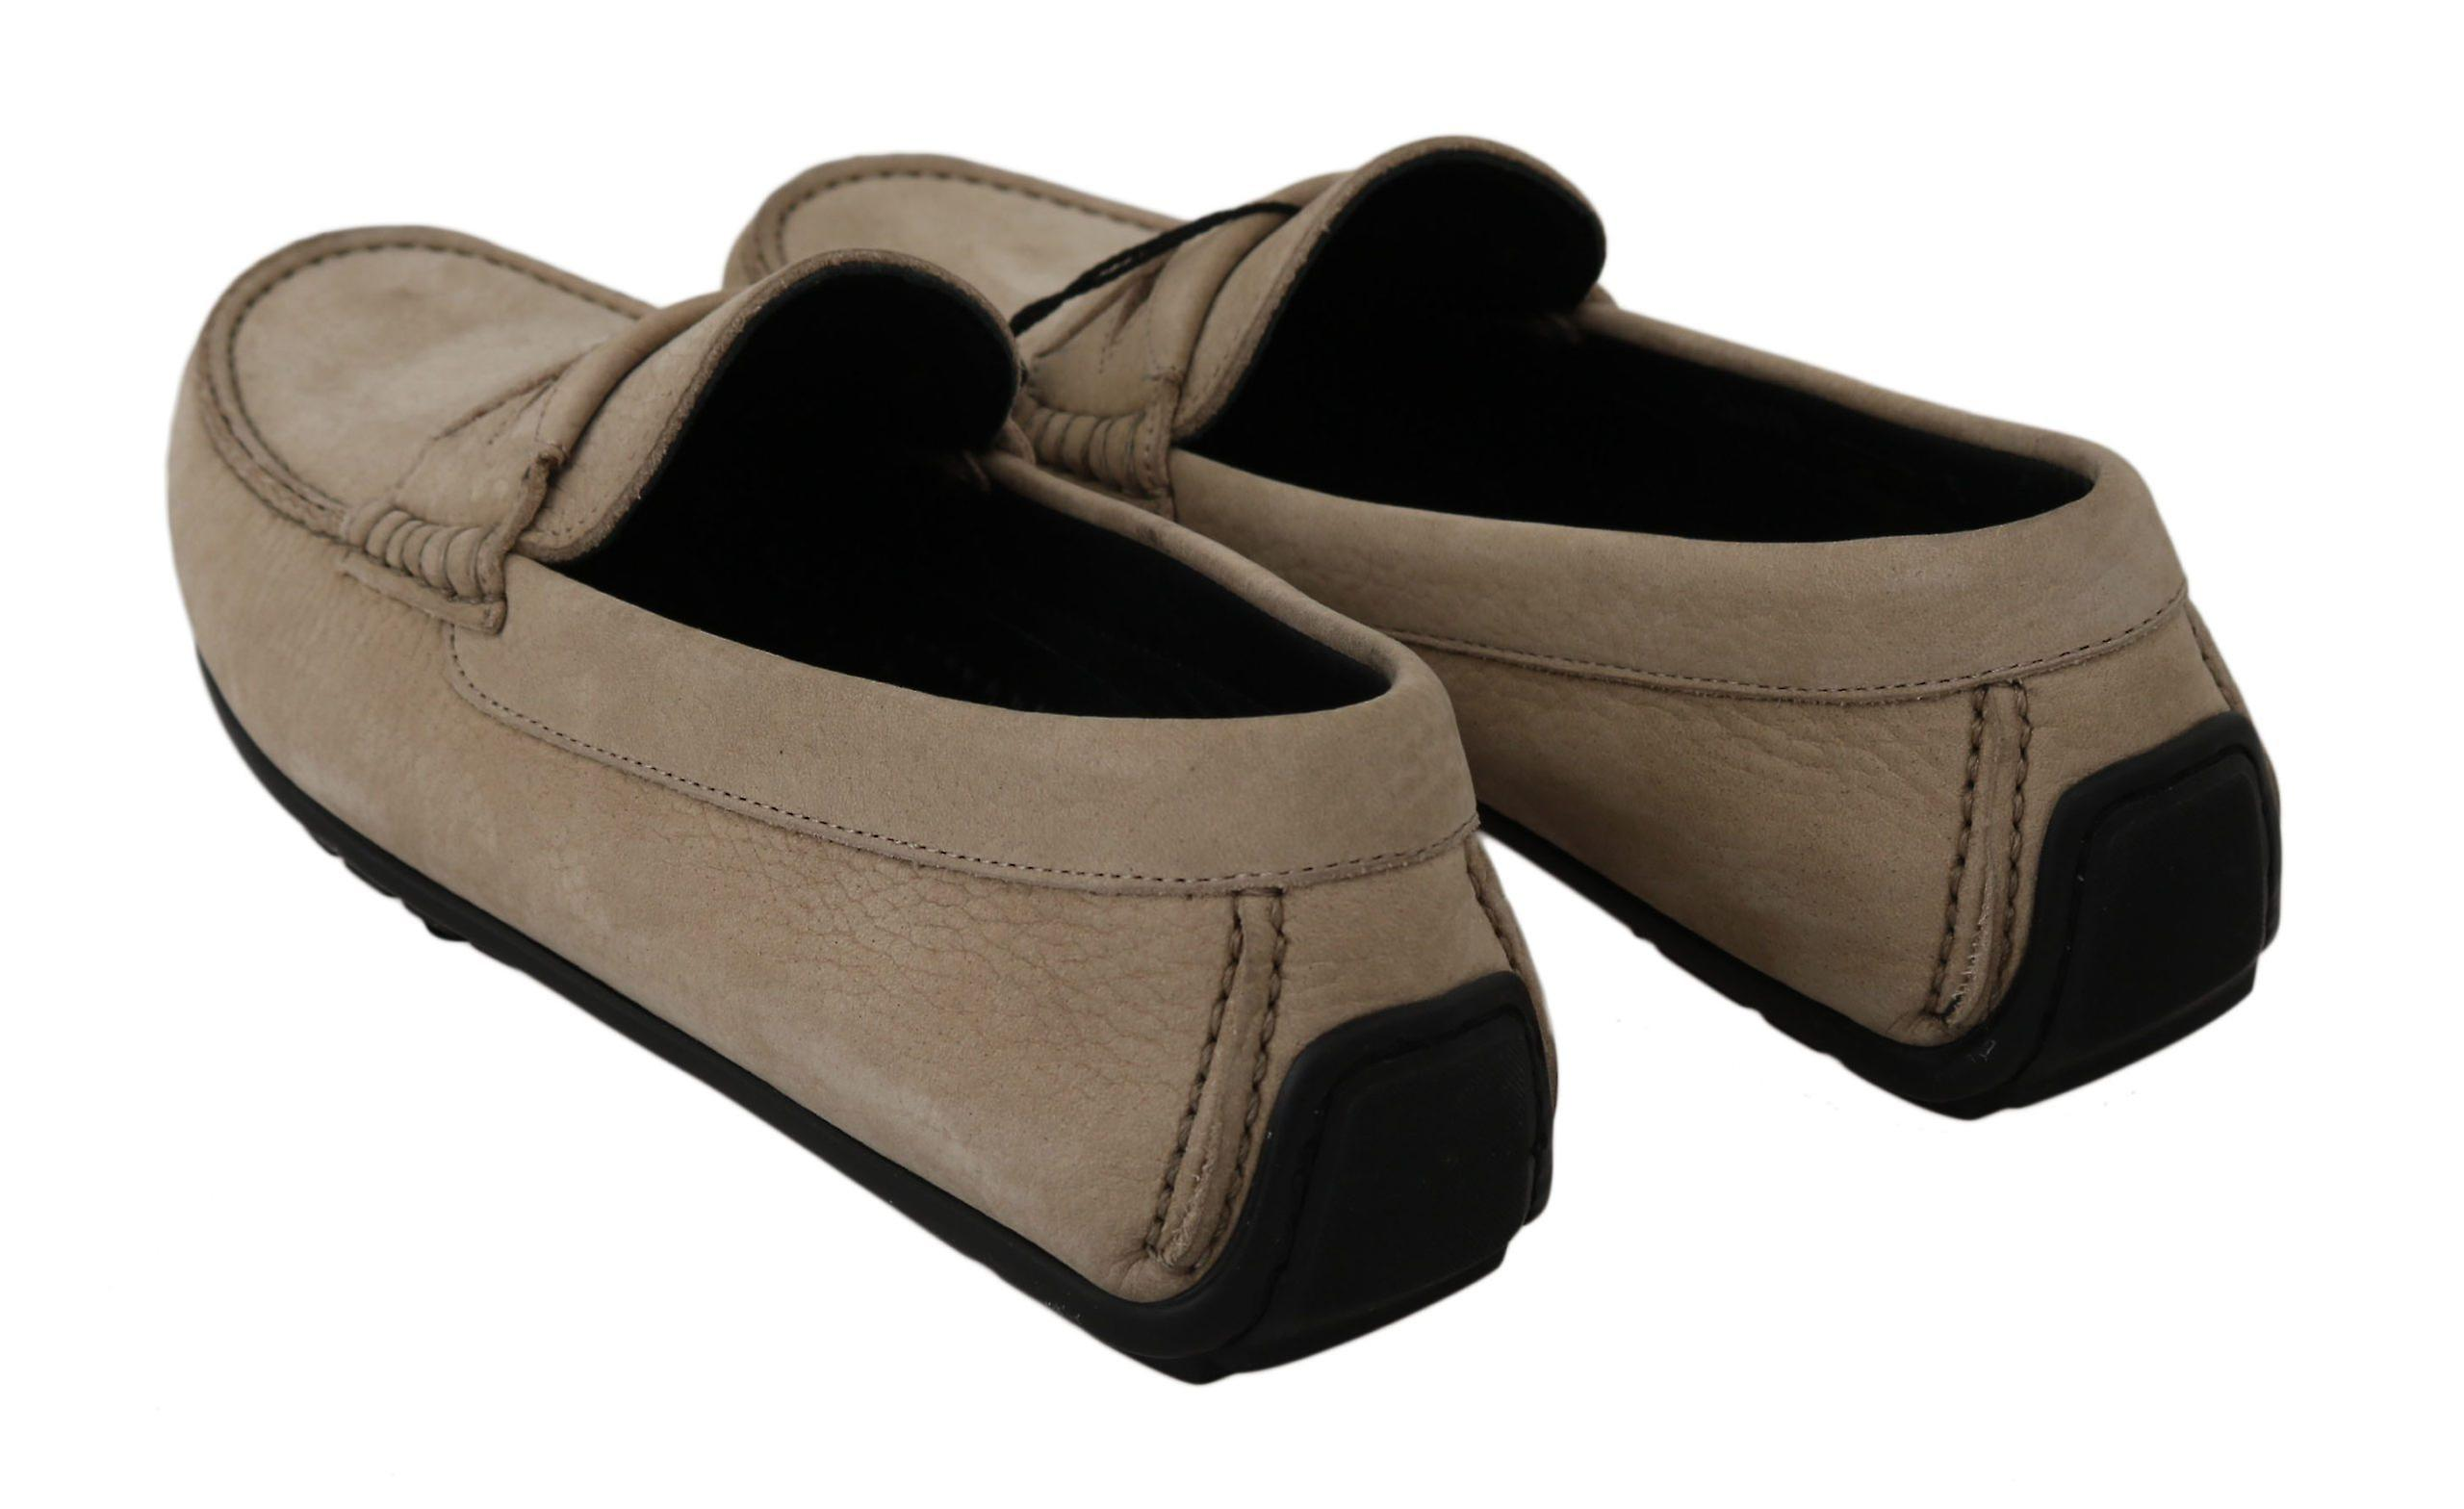 Dolce & Gabbana Beige Leather Flat Loafers Casual Mens Shoes -- Mv23179056